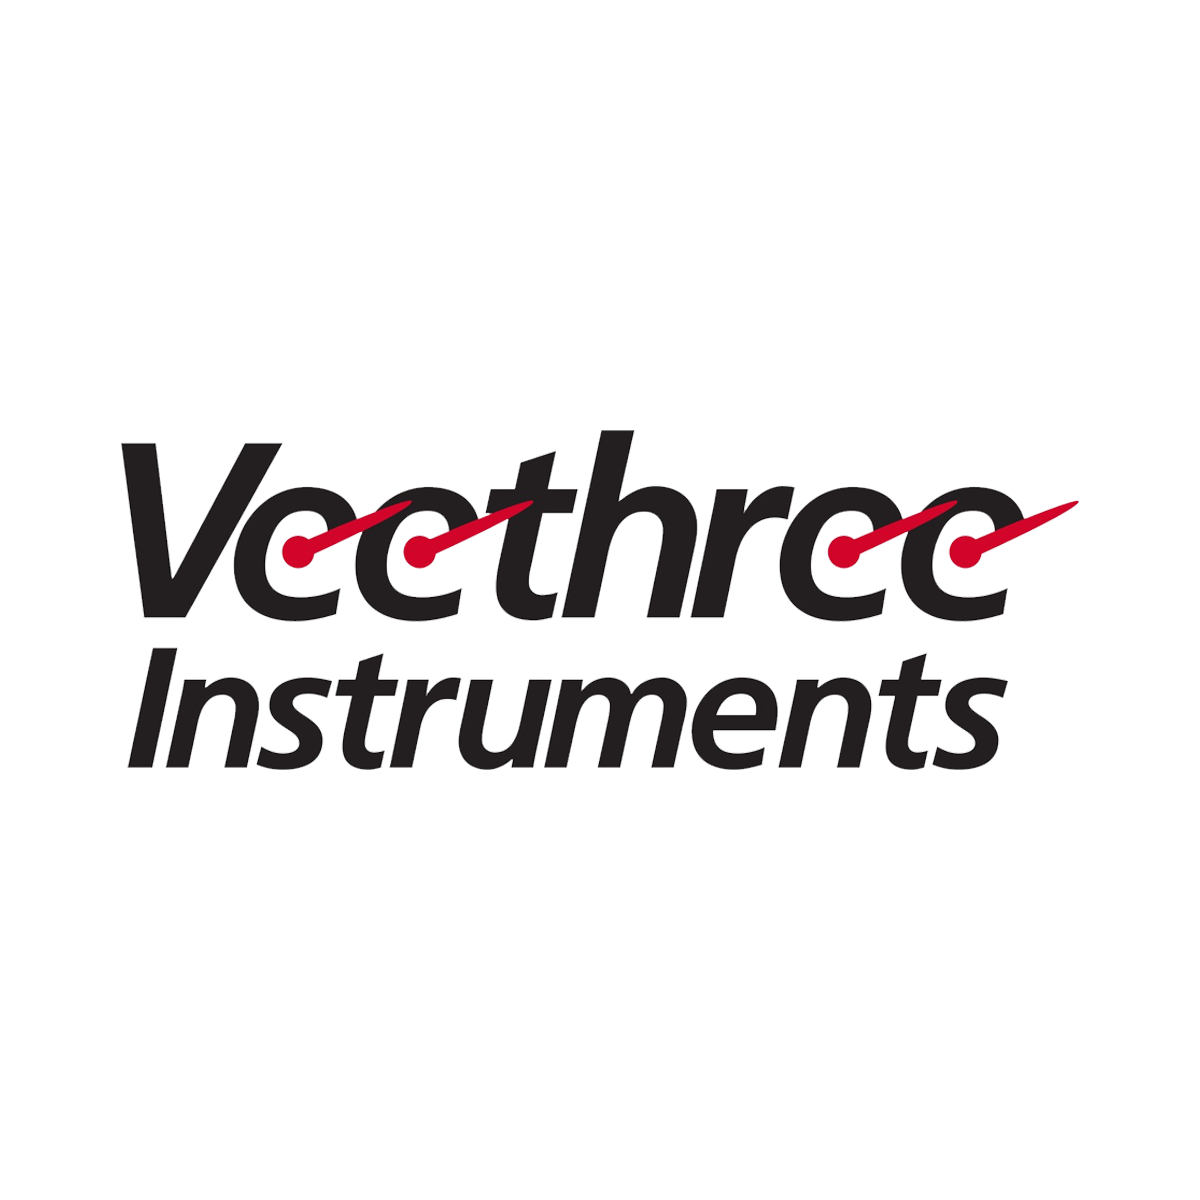 veethree instruments logo